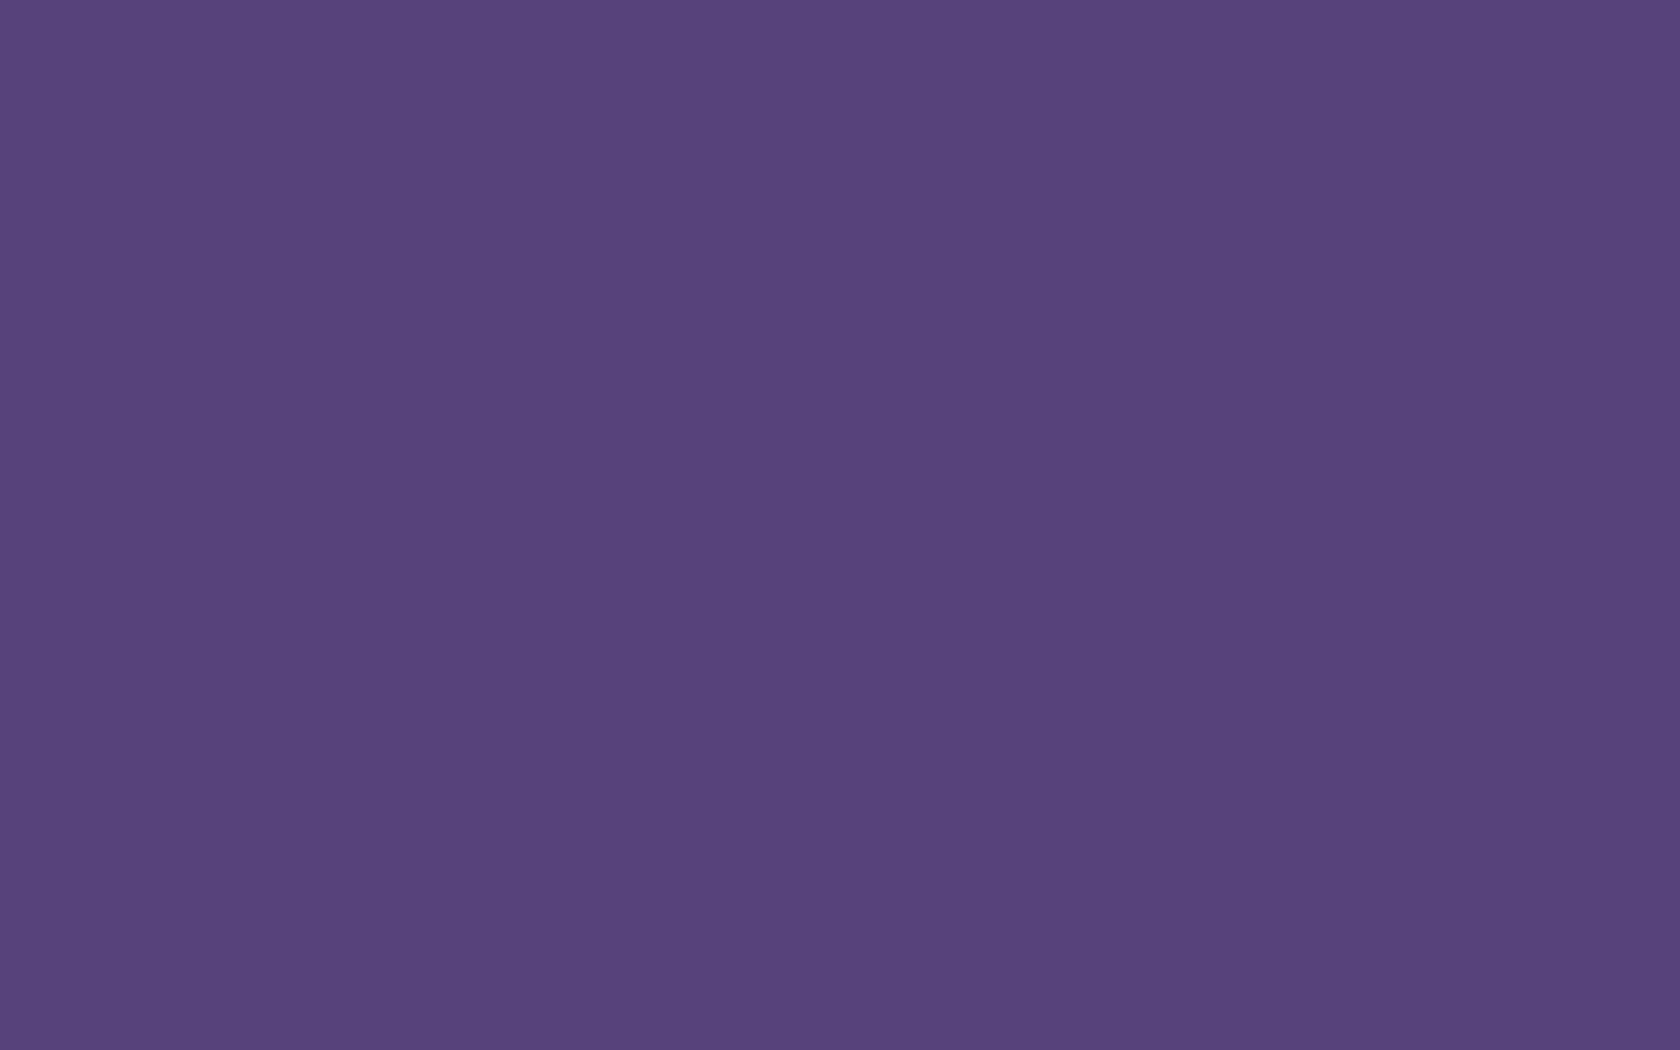 1680x1050 Cyber Grape Solid Color Background